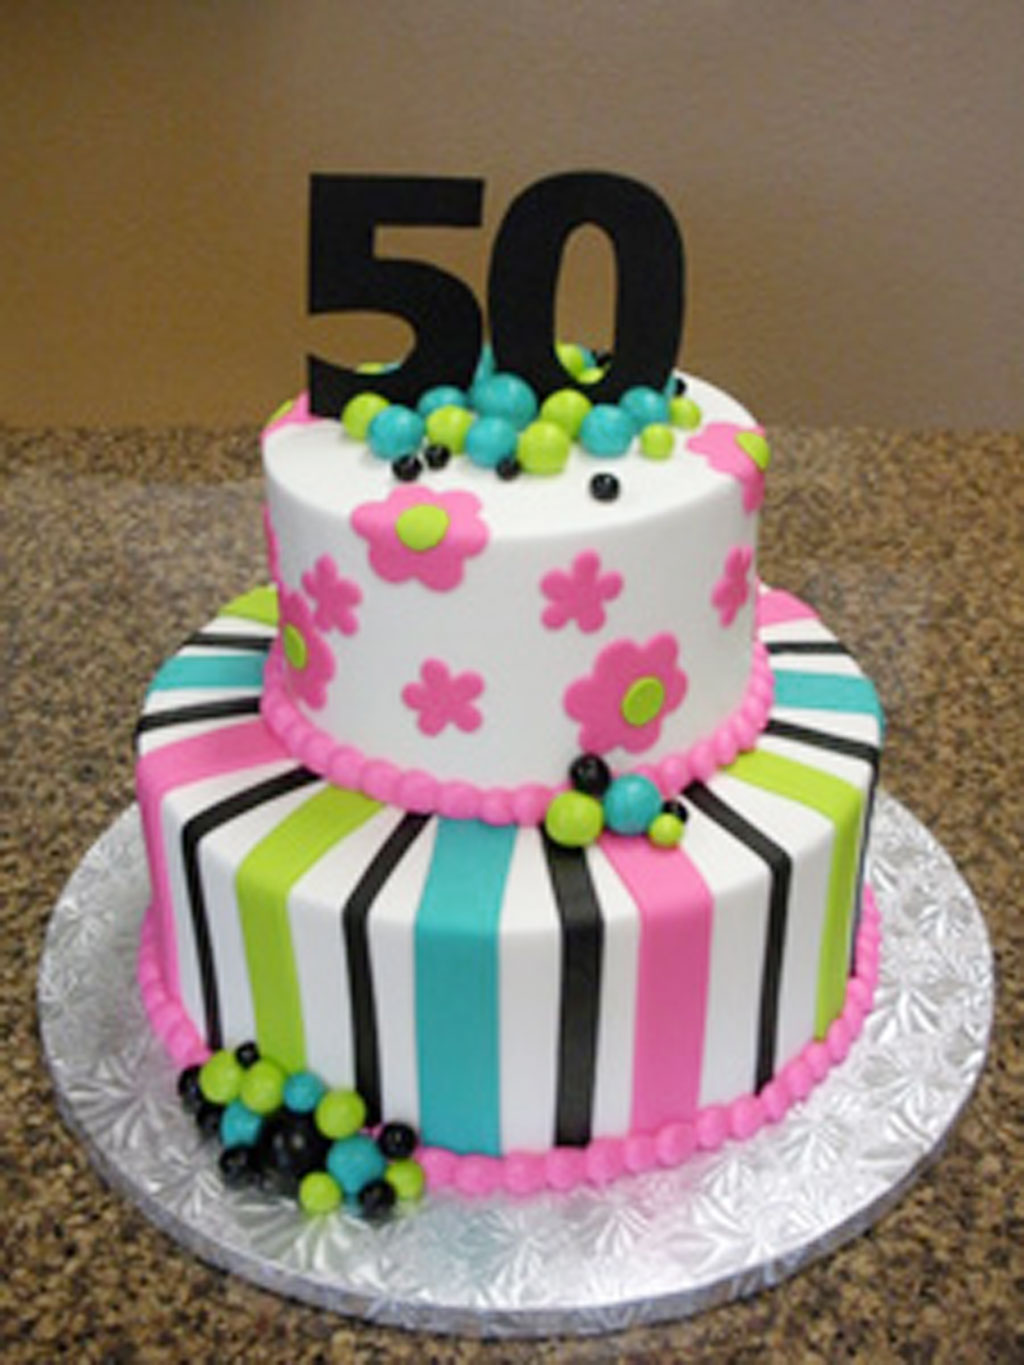 Cake Designs For Birthdays : 50th Birthday Cakes Pictures For Women Birthday Cake ...